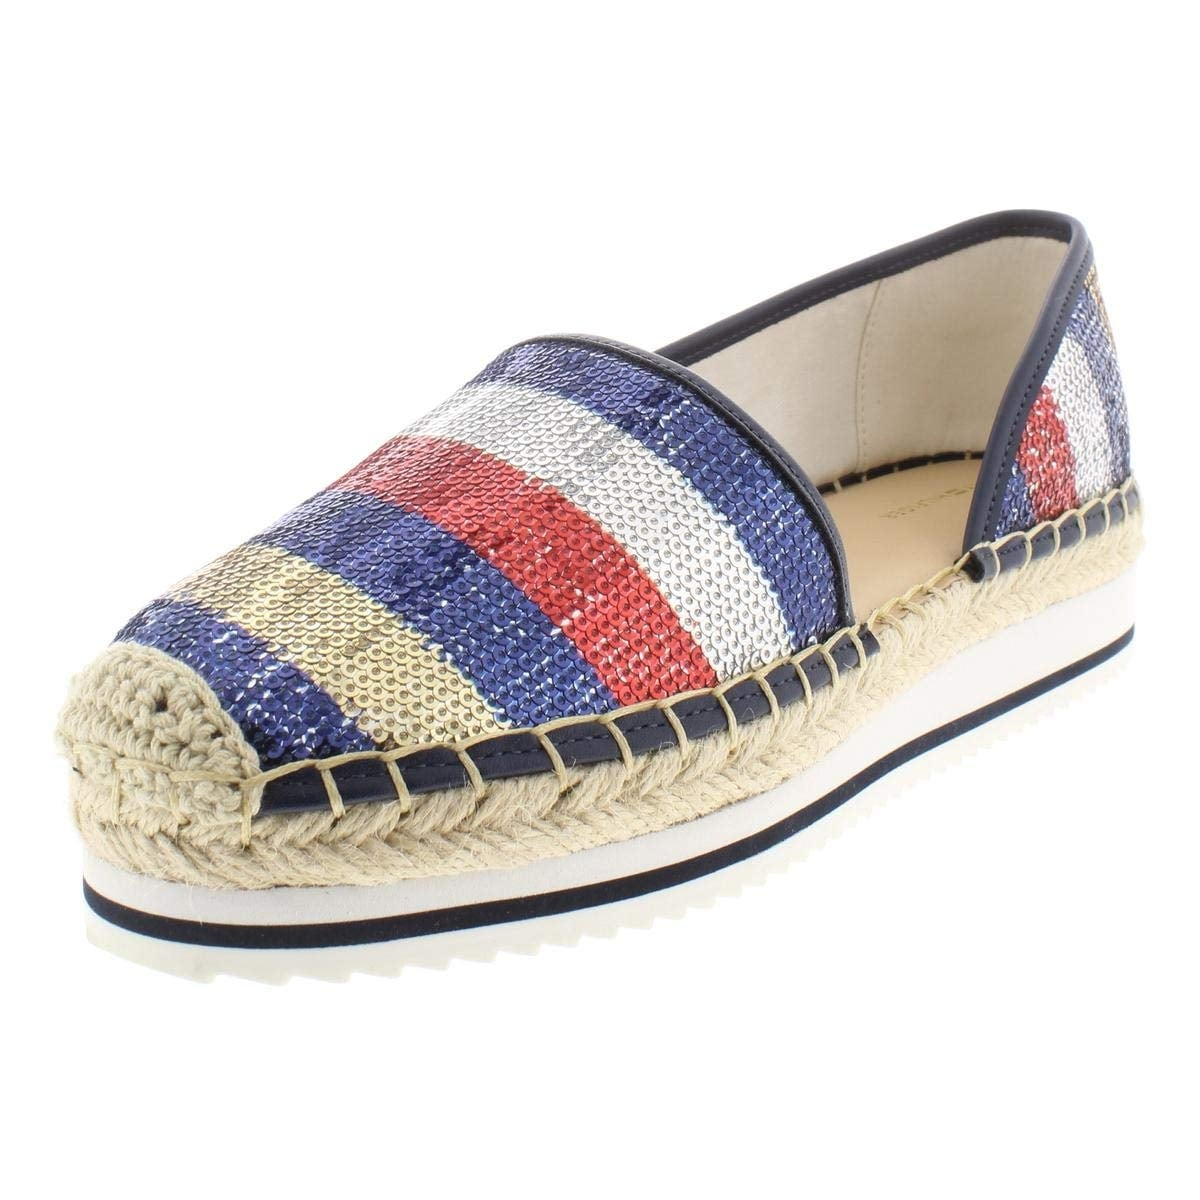 028f7c0dcd1 Buy Tommy Hilfiger Women s Flats Online at Overstock